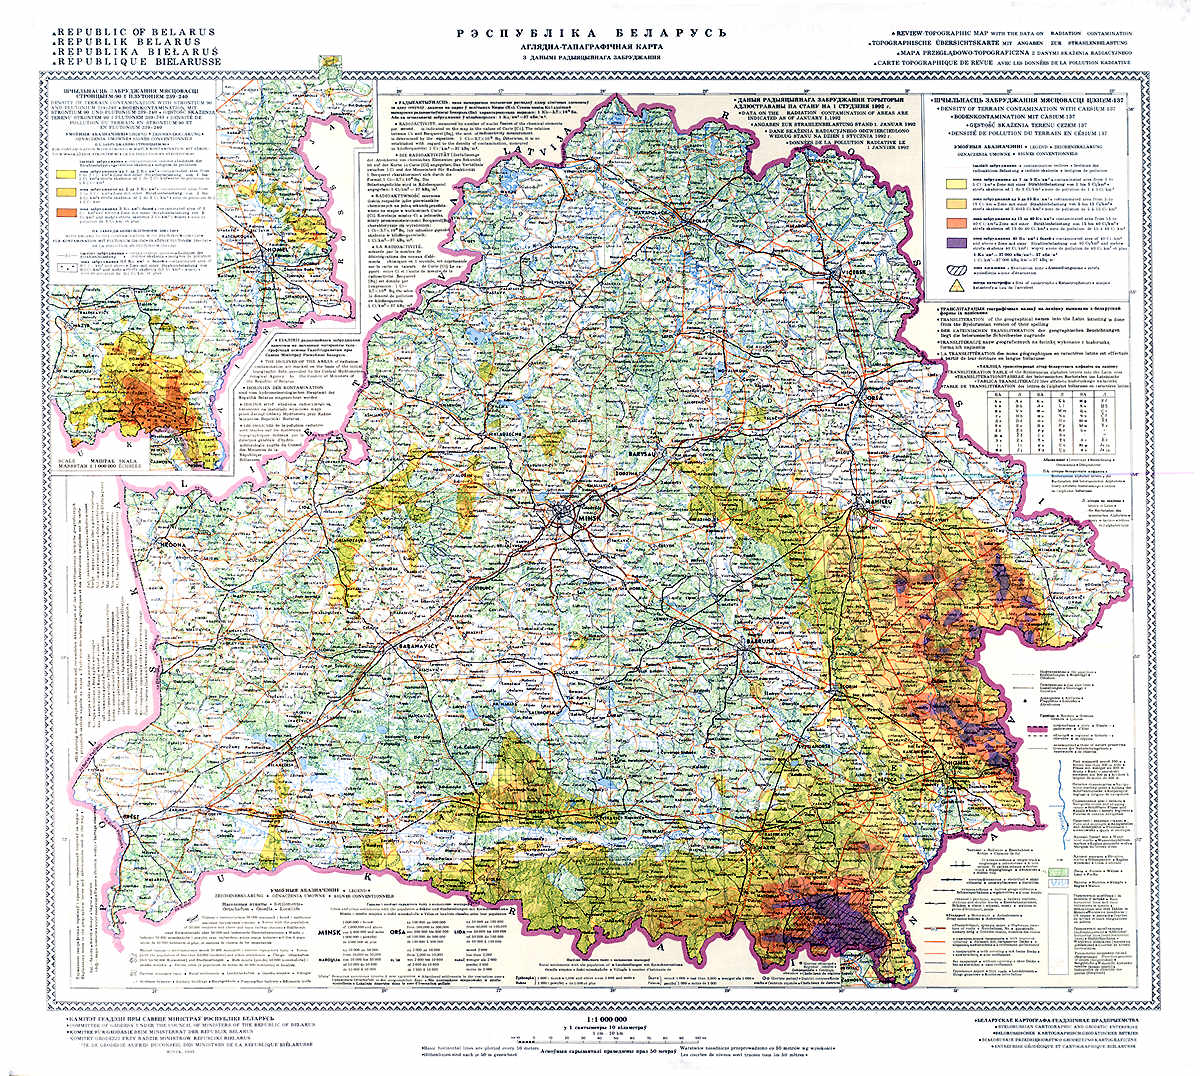 Radiation Contamination In Belarus Map Mappery - Radiation map in us